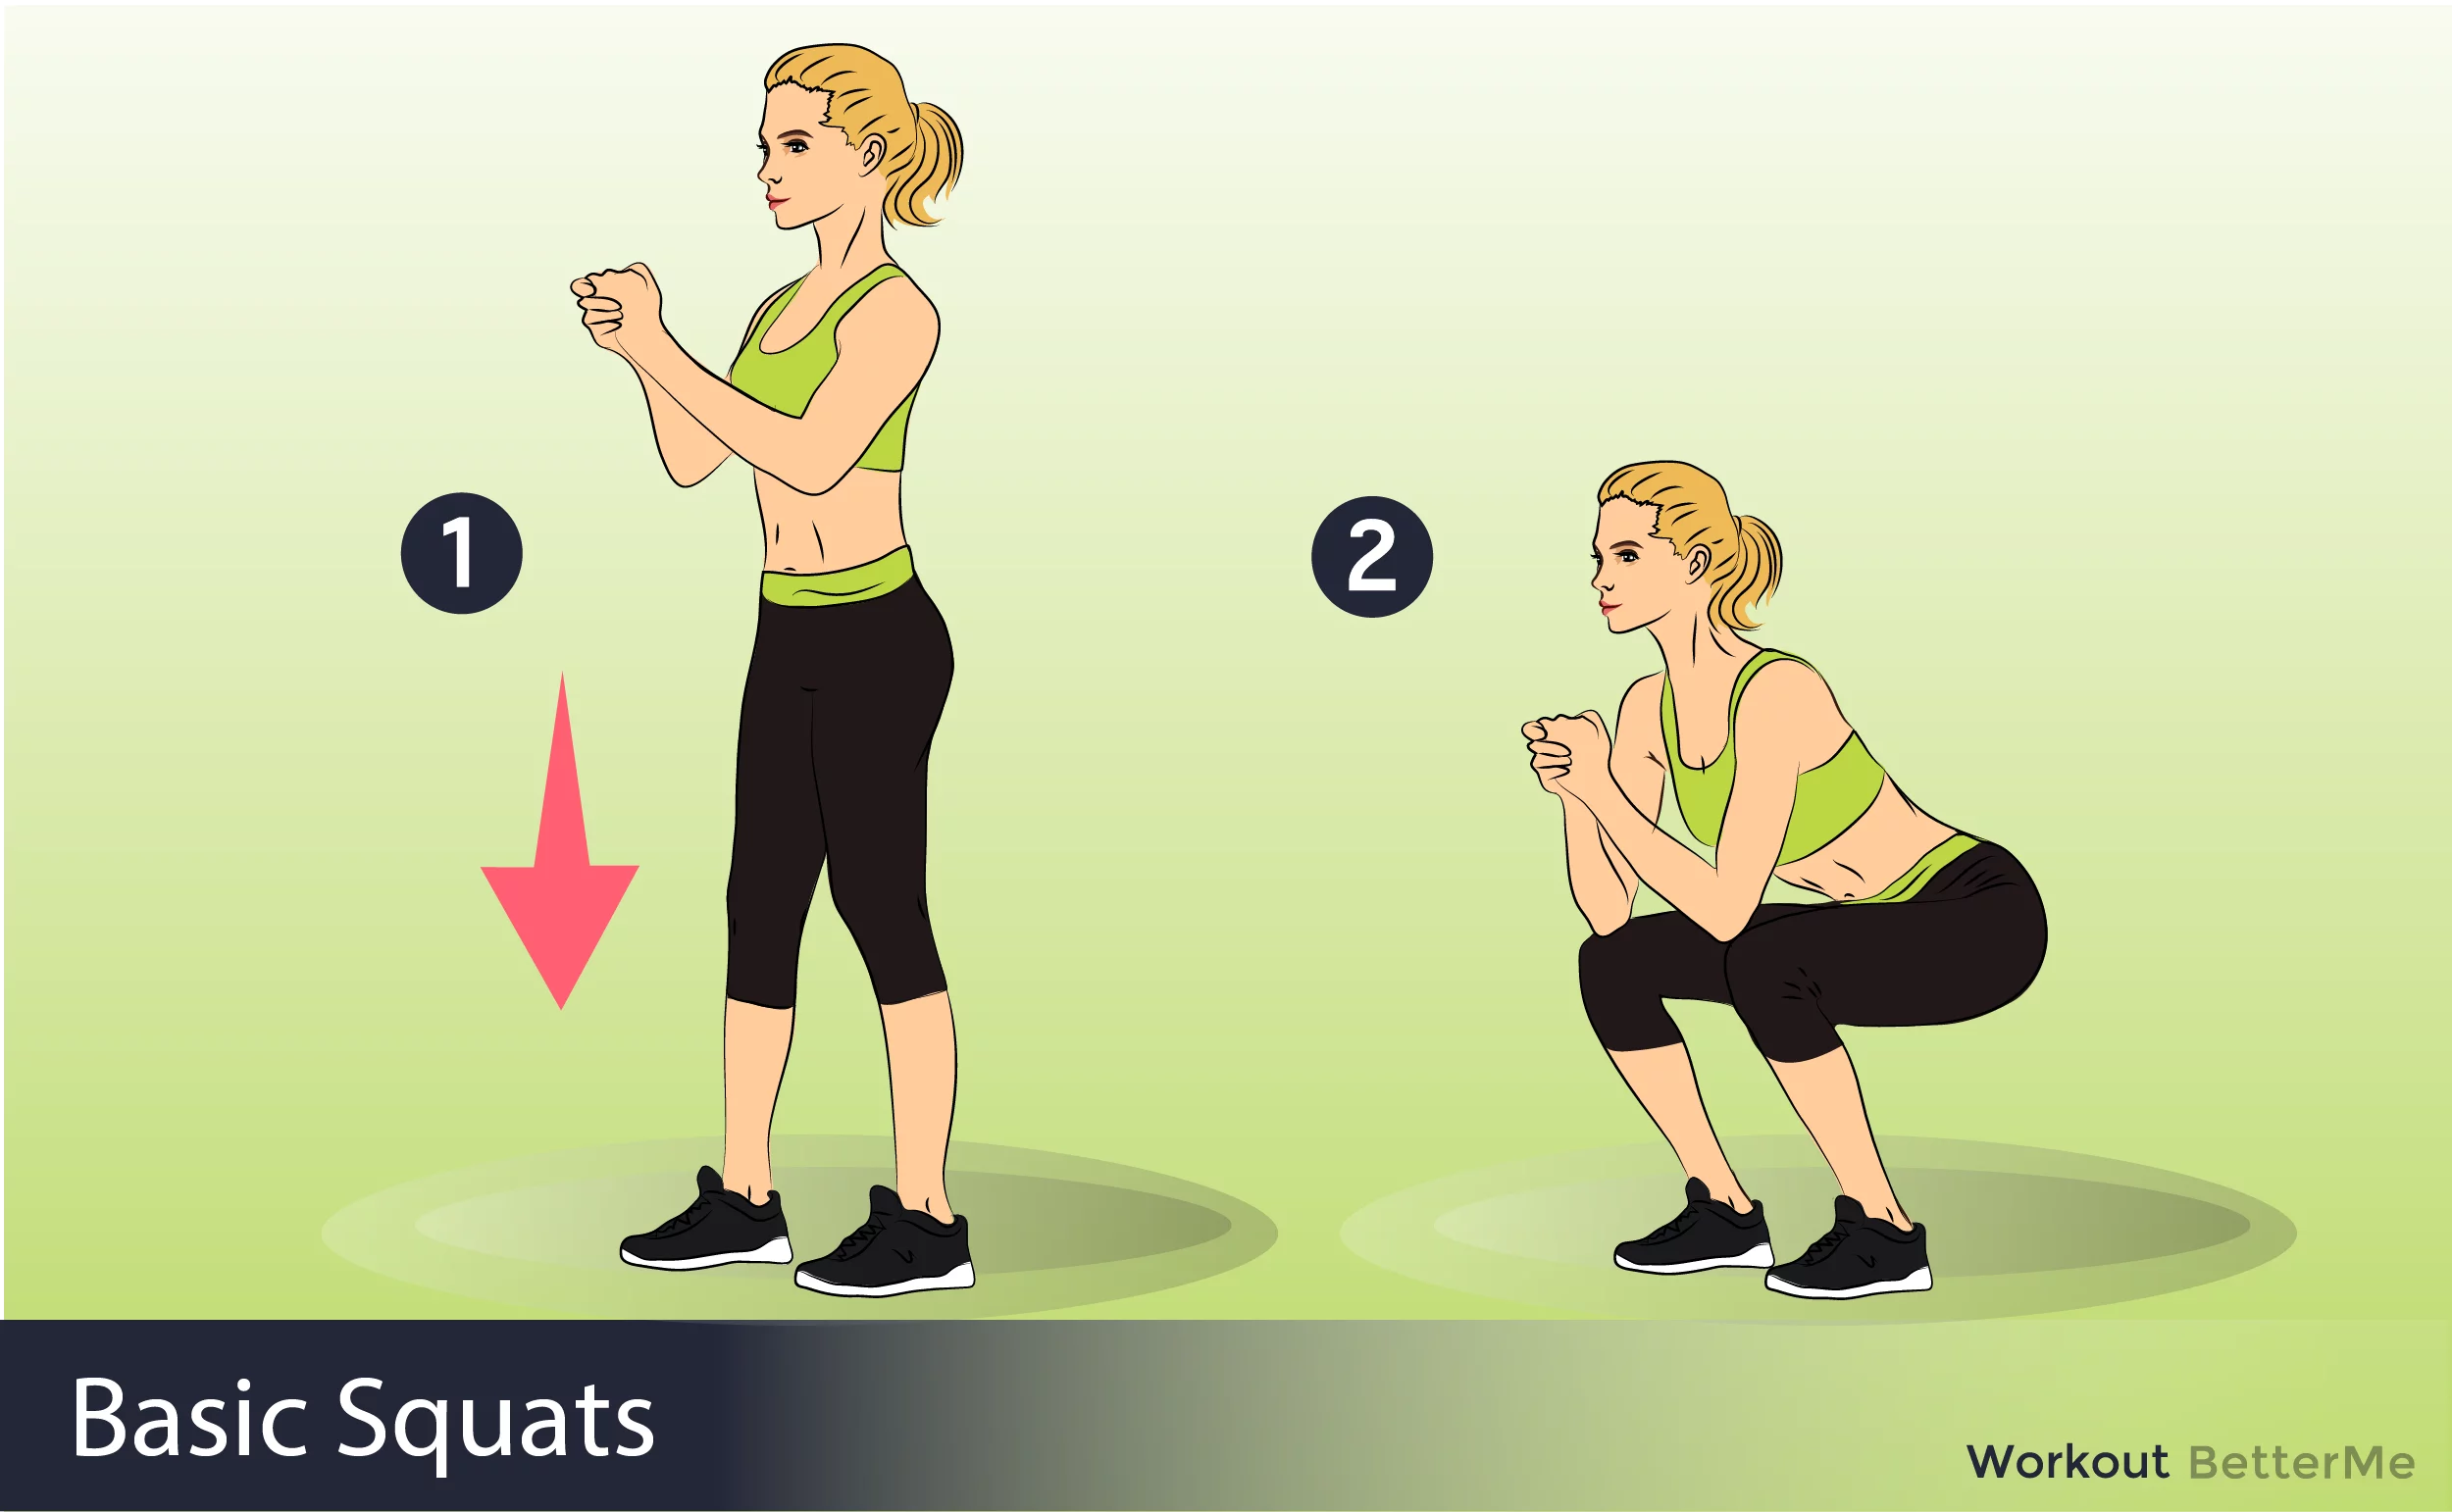 7 easy exercises that can help you slim down